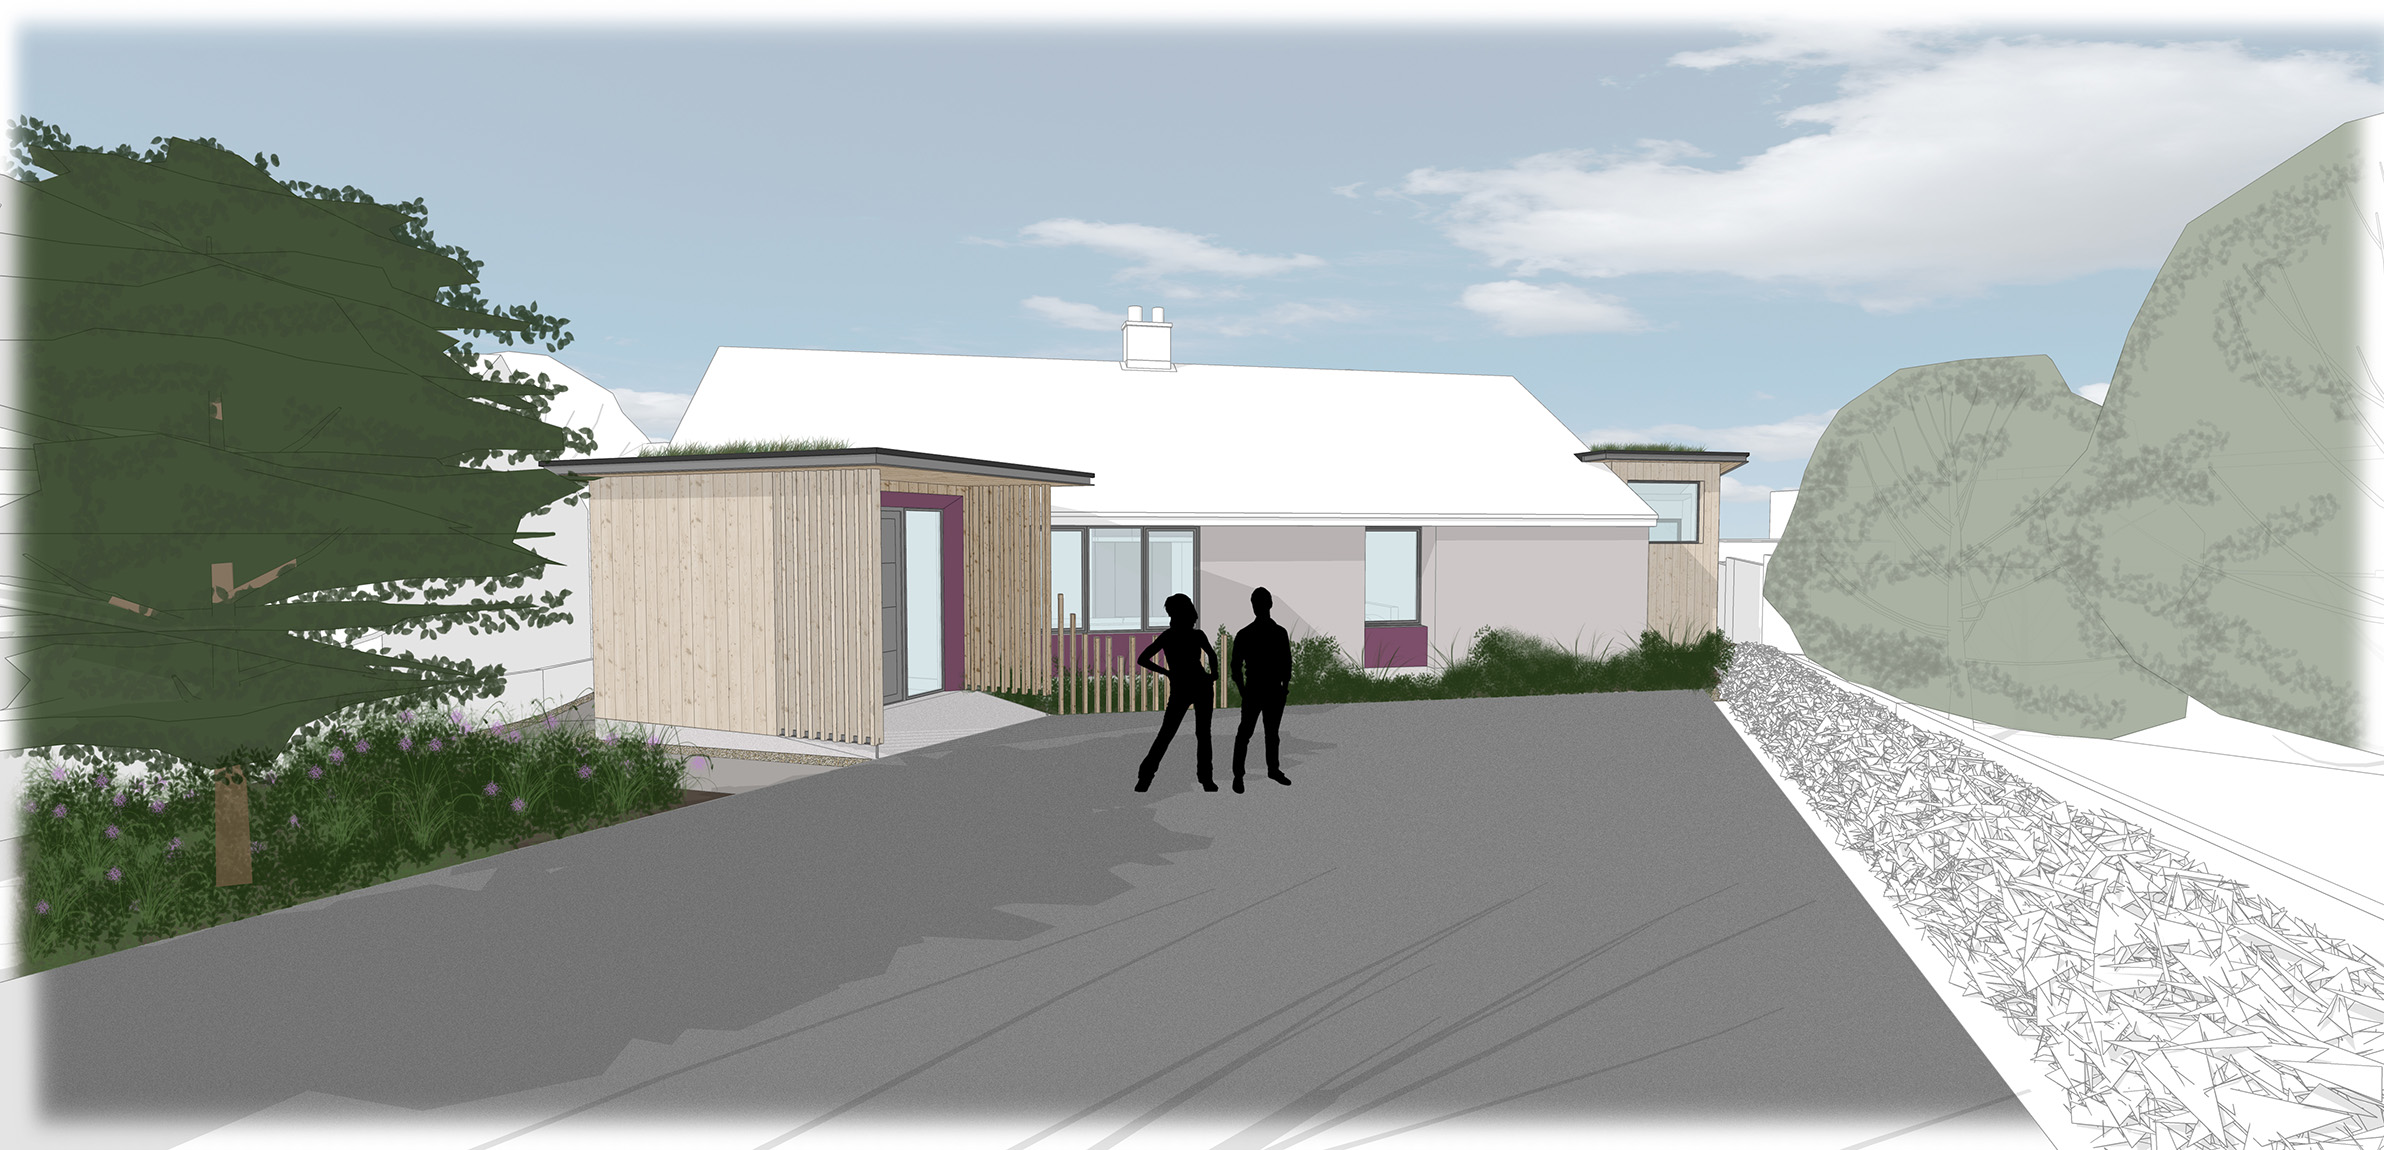 Feasibility Study 1 - Front view